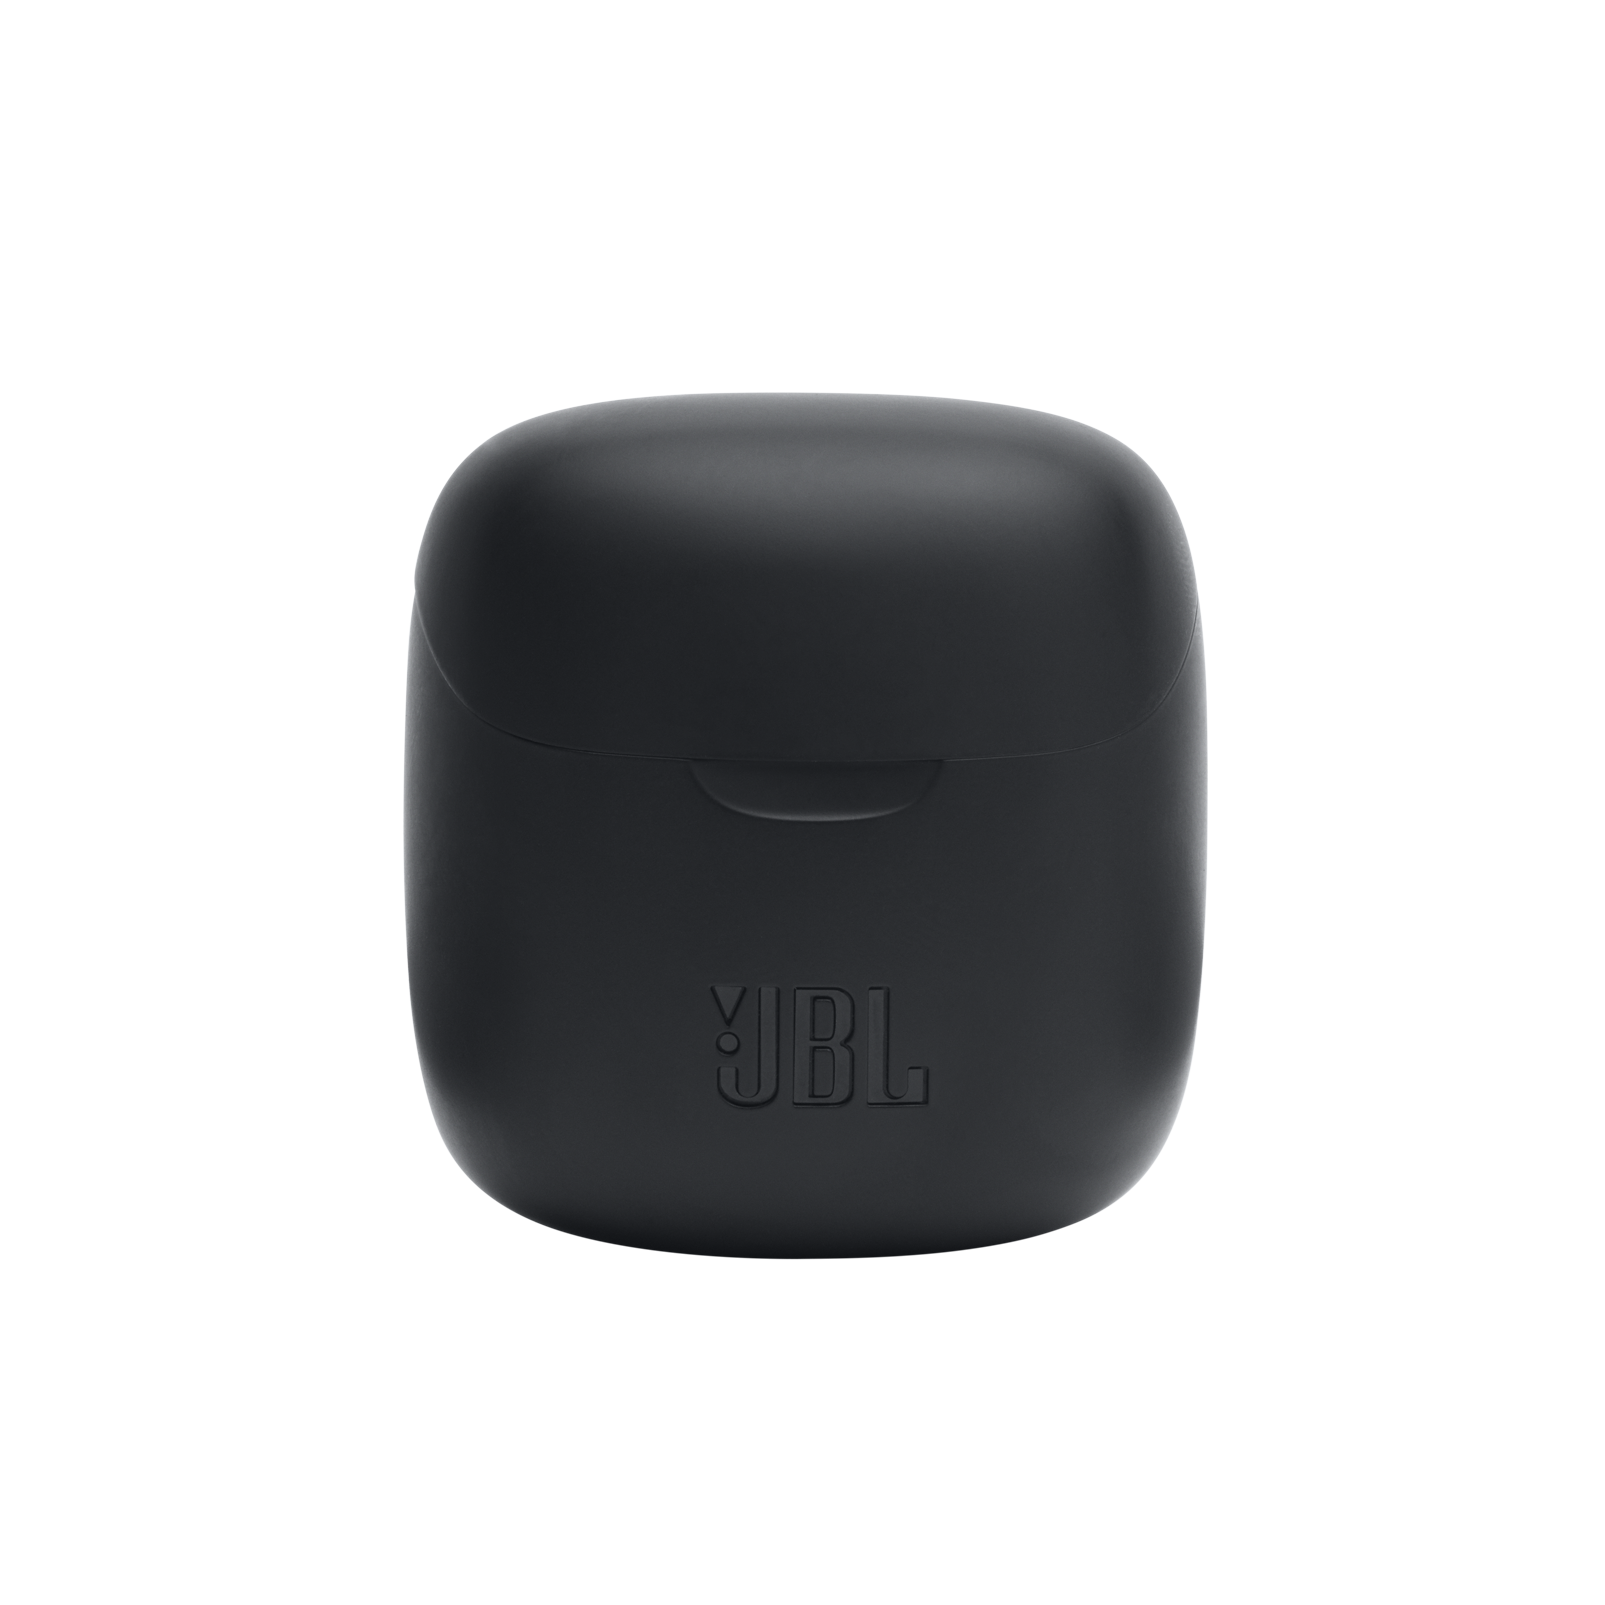 JBL Tune 225TWS - Black - True wireless earbud headphones - Detailshot 5